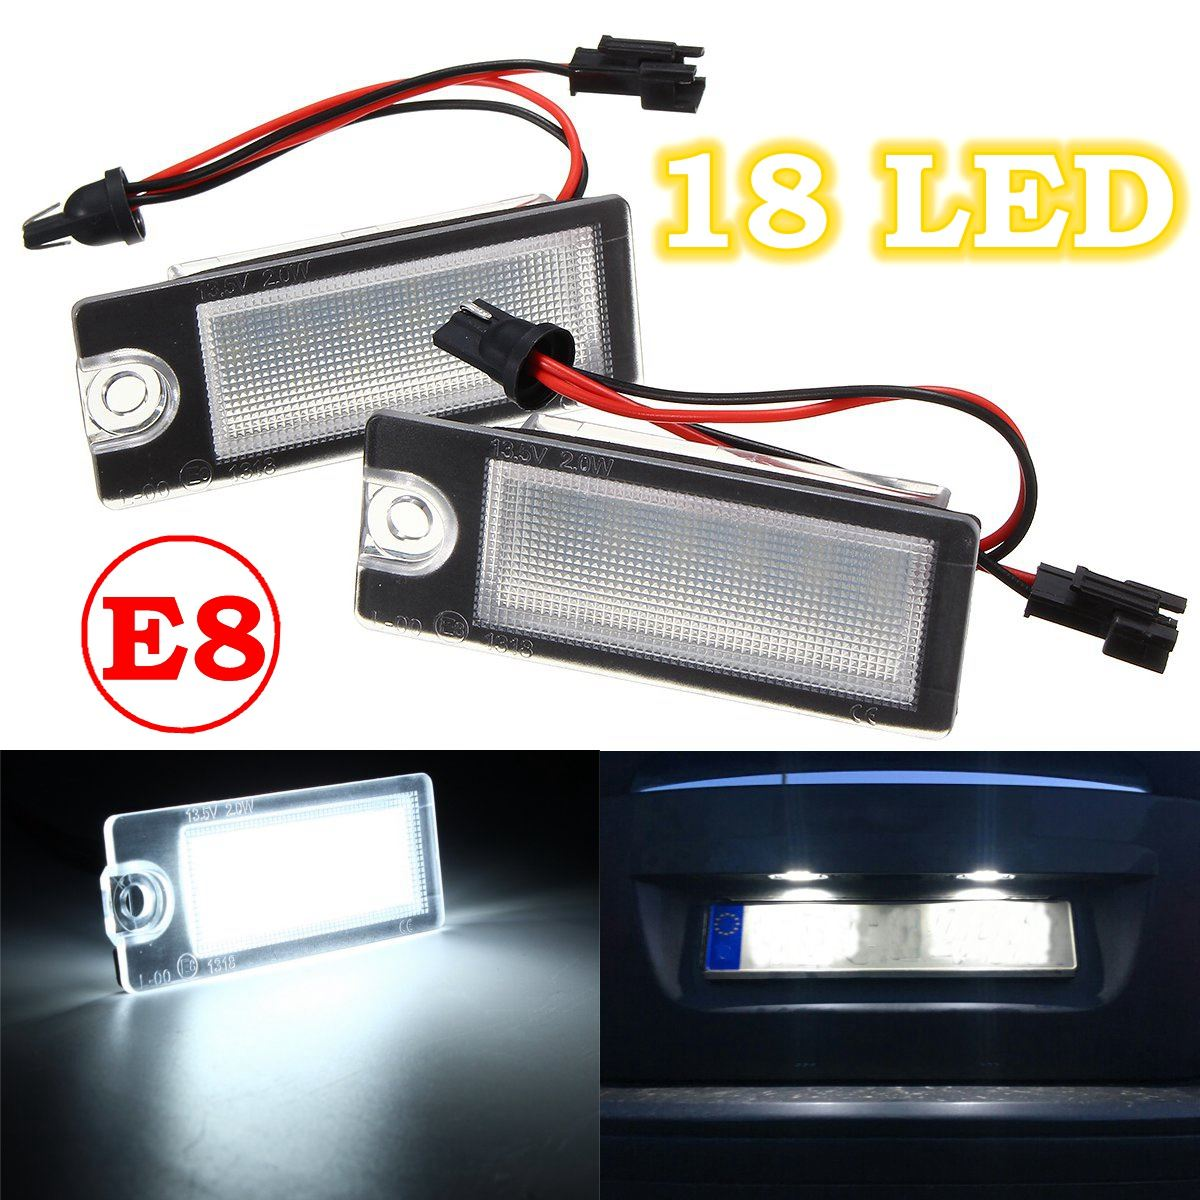 2Pcs Car 18 LED License Plate Light White Number Plate Lamp For Volvo S80 99-06 V70 XC70 S60 XC90 Accessories бисер прозрачный с цв центром и покрытием 10 0 38695 круг отв 50гр preciosa